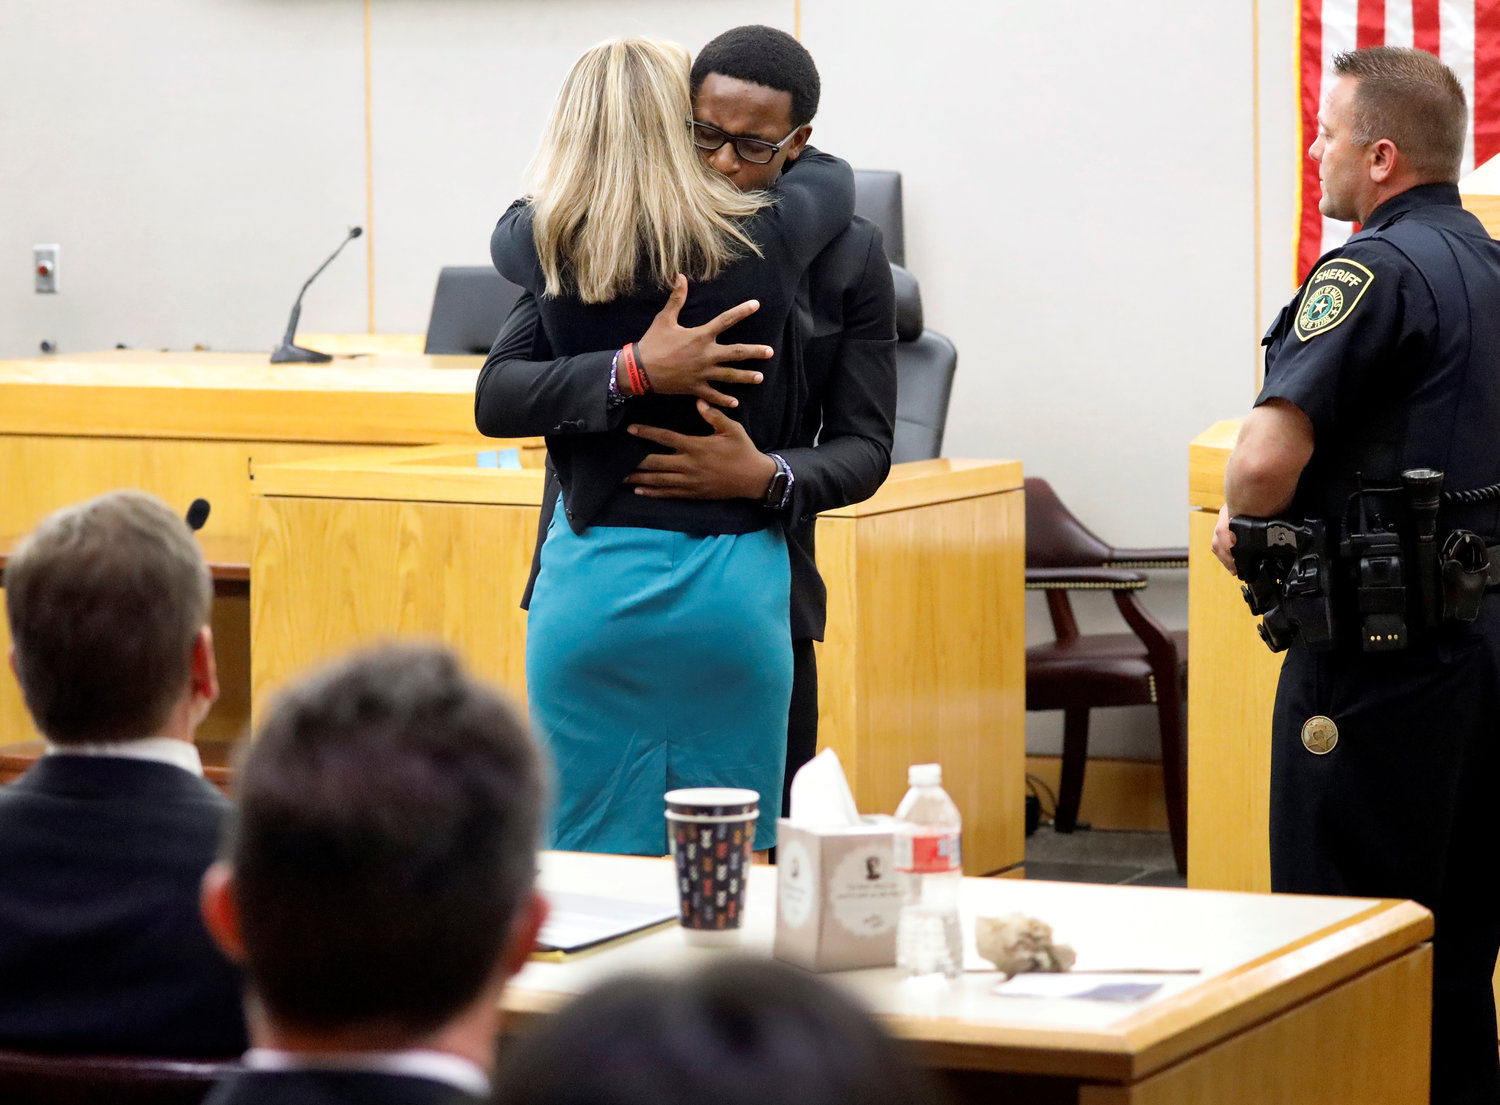 Brandt Jean, the younger brother of murder victim Botham Jean, hugs former Dallas police officer Amber Guyger after delivering his impact statement to Guyger at the Frank Crowley Courts Building in Dallas following her Oct. 2, 2019, sentencing to 10 years in prison for murdering Botham. (CNS photo/Tom Fox pool via Reuters) See DALLAS-BISHOP-FORGIVENESS Oct. 3, 2019.